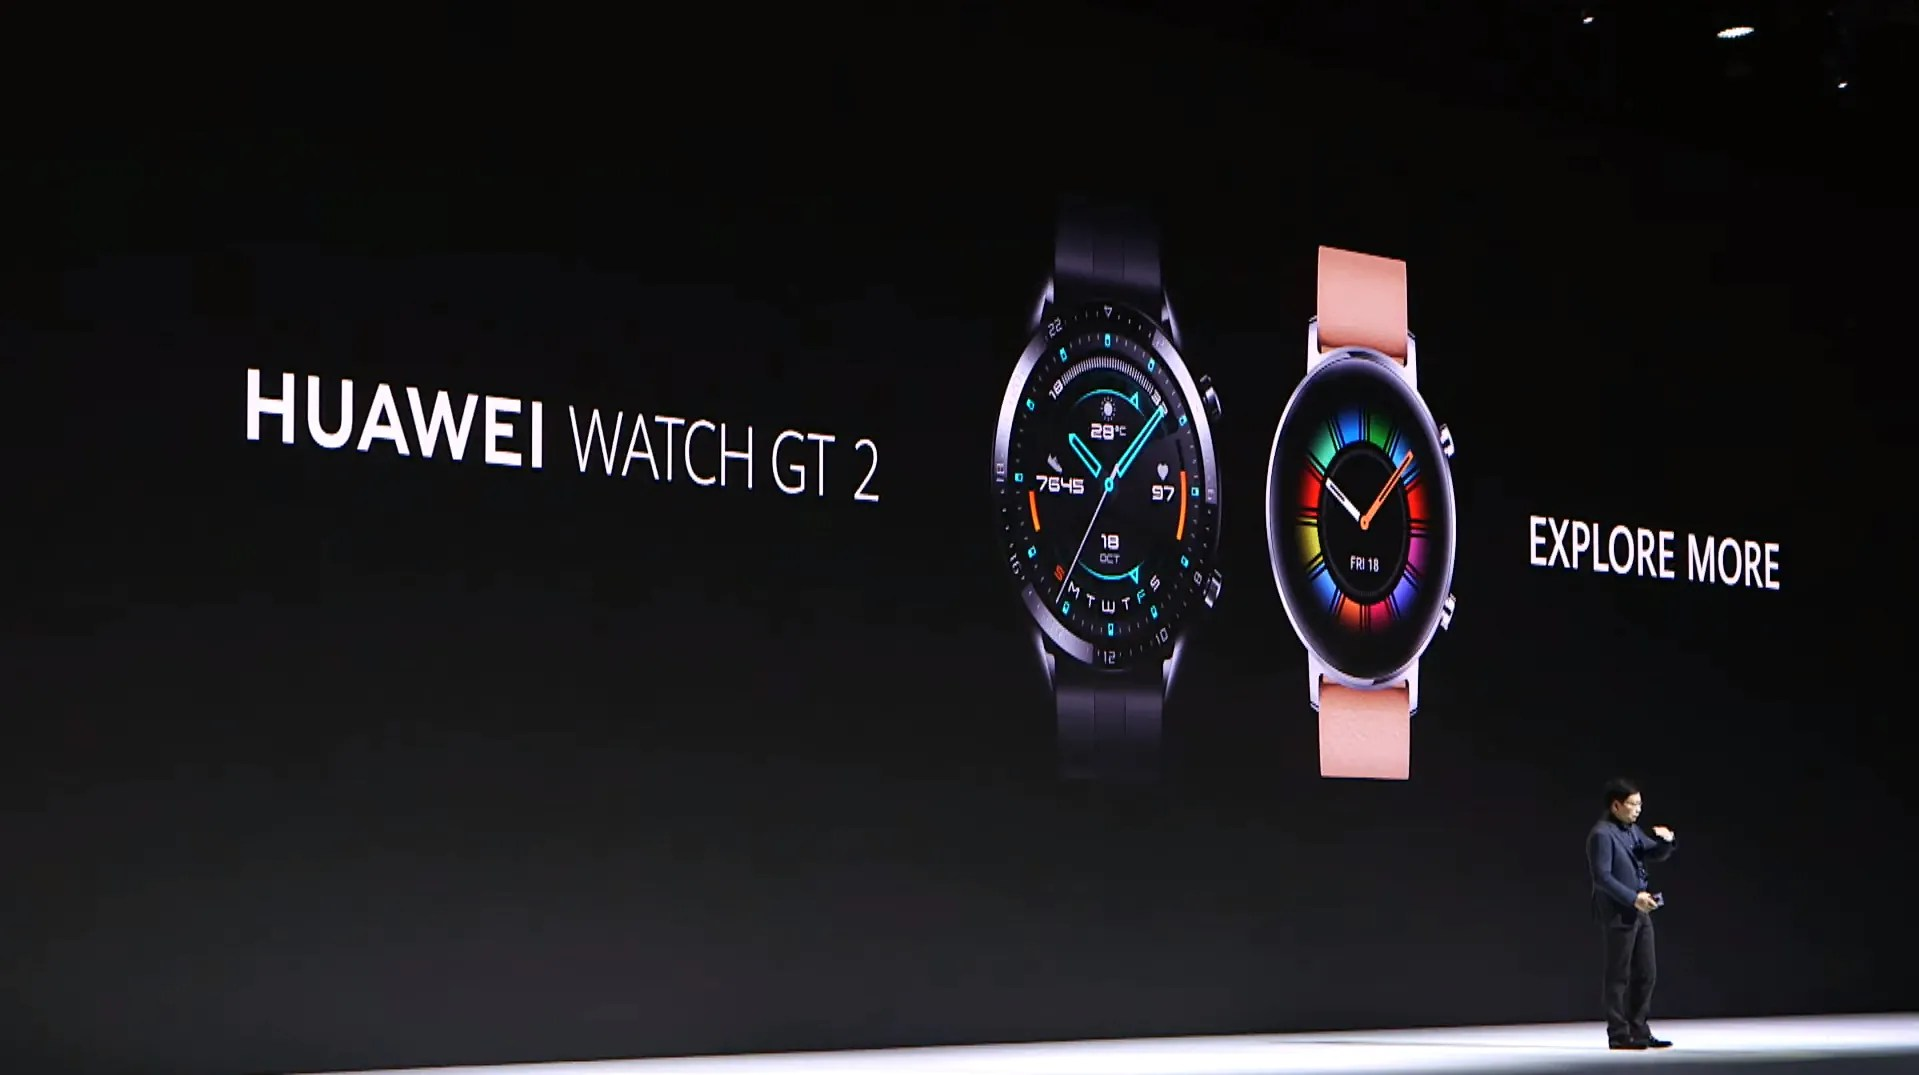 Huawei announces the Watch GT 2 in two case and size options